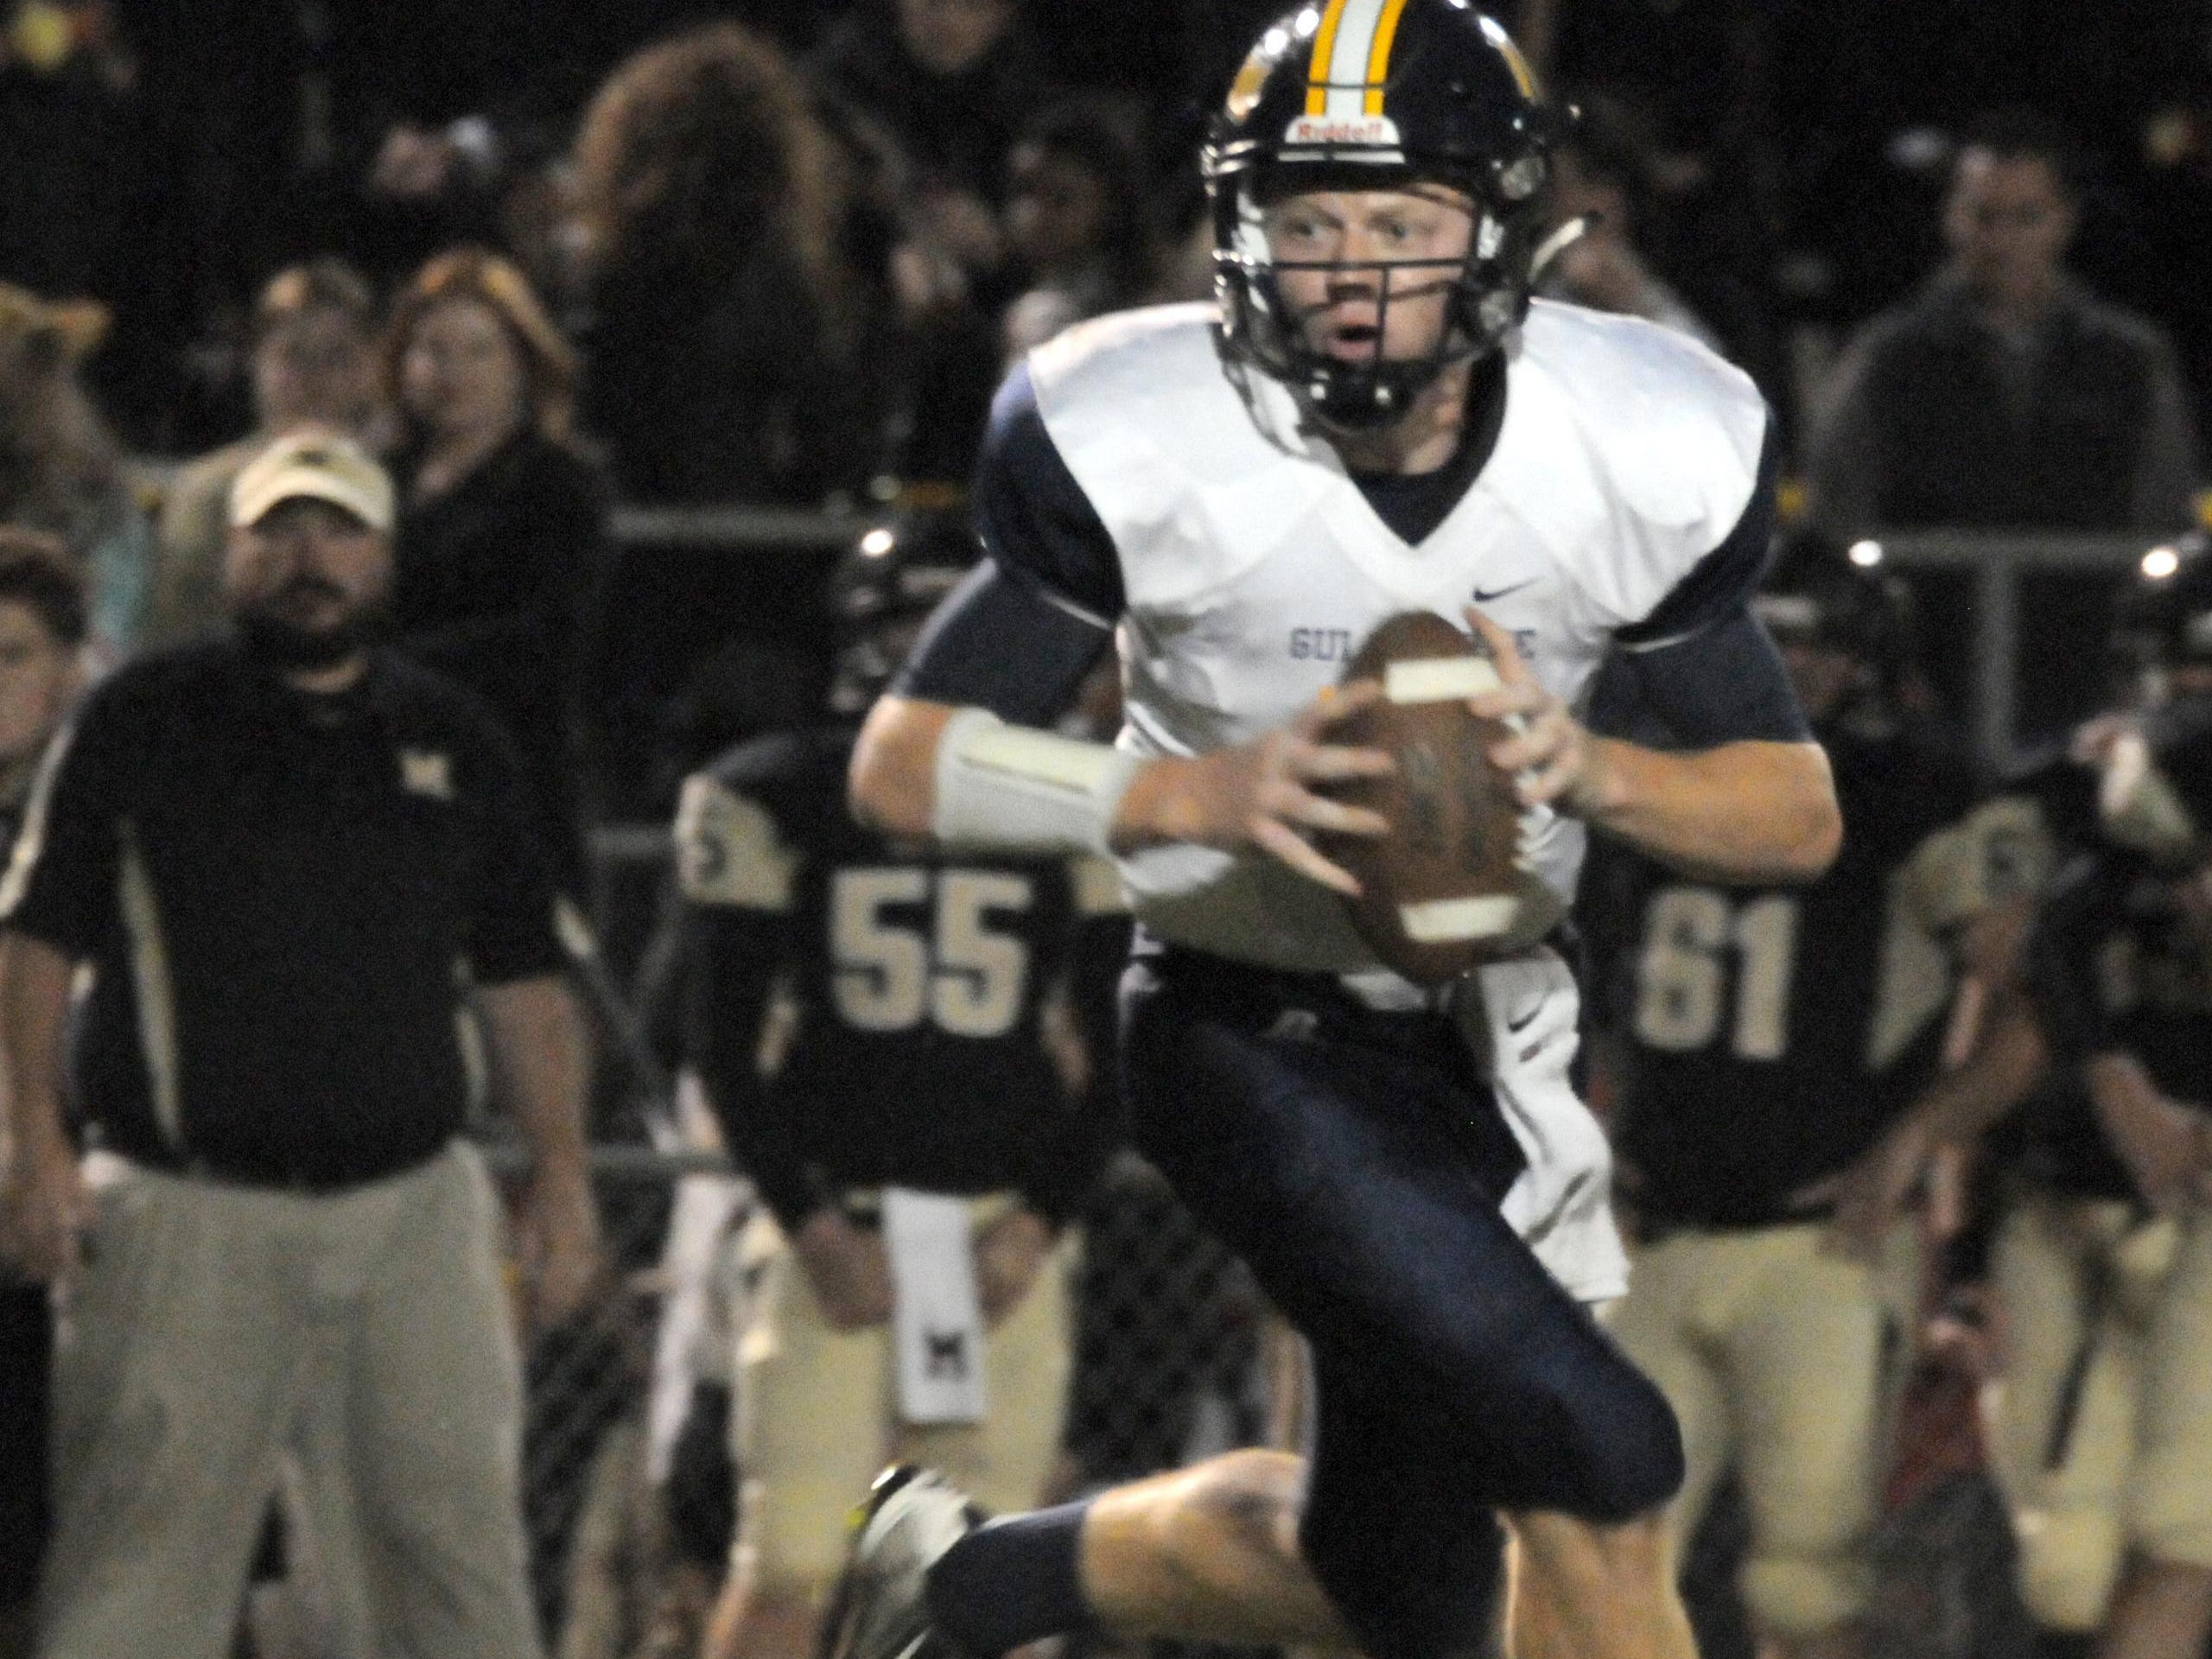 Gulf Breeze quarterback Tyler Phelps threw for 273 yards and five touchdowns as the Dolphins defeated the Milton Panthers 48-26 at Hurley Manning Field to spoil the Panthers' homecoming festivities.